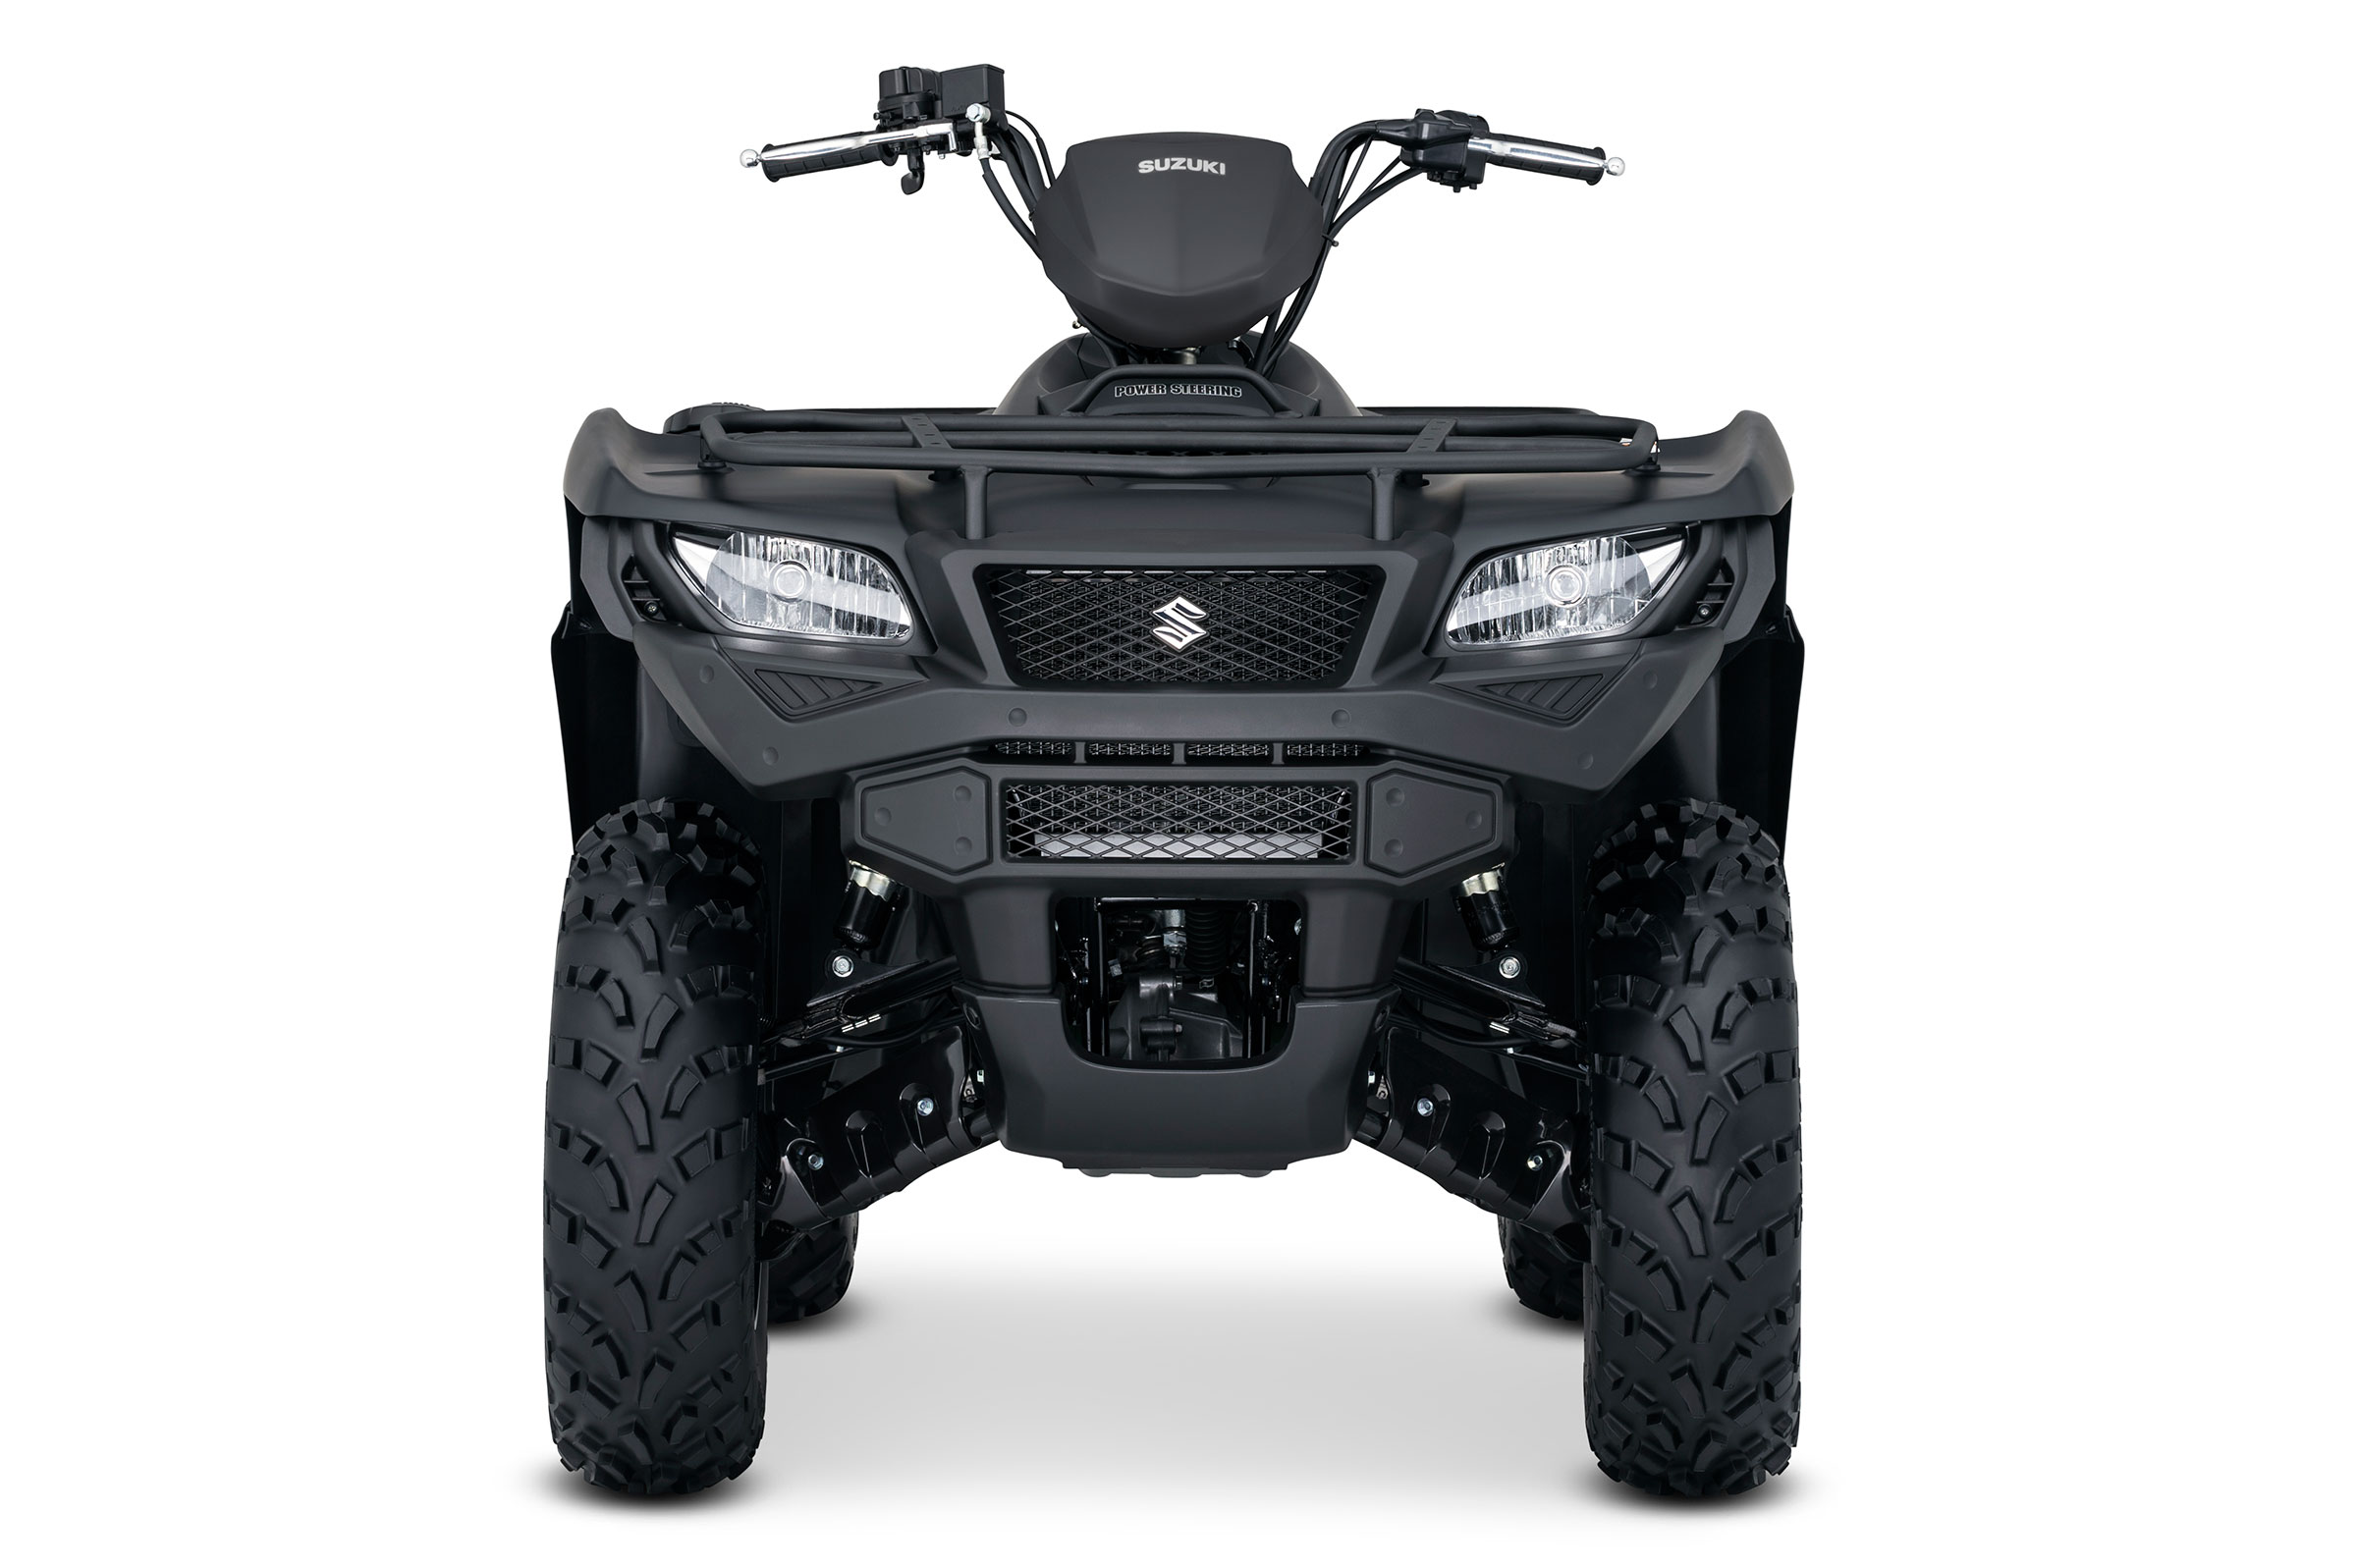 2018 Suzuki KingQuad 750AXi Power Steering Special Edition in Fayetteville, Georgia - Photo 7